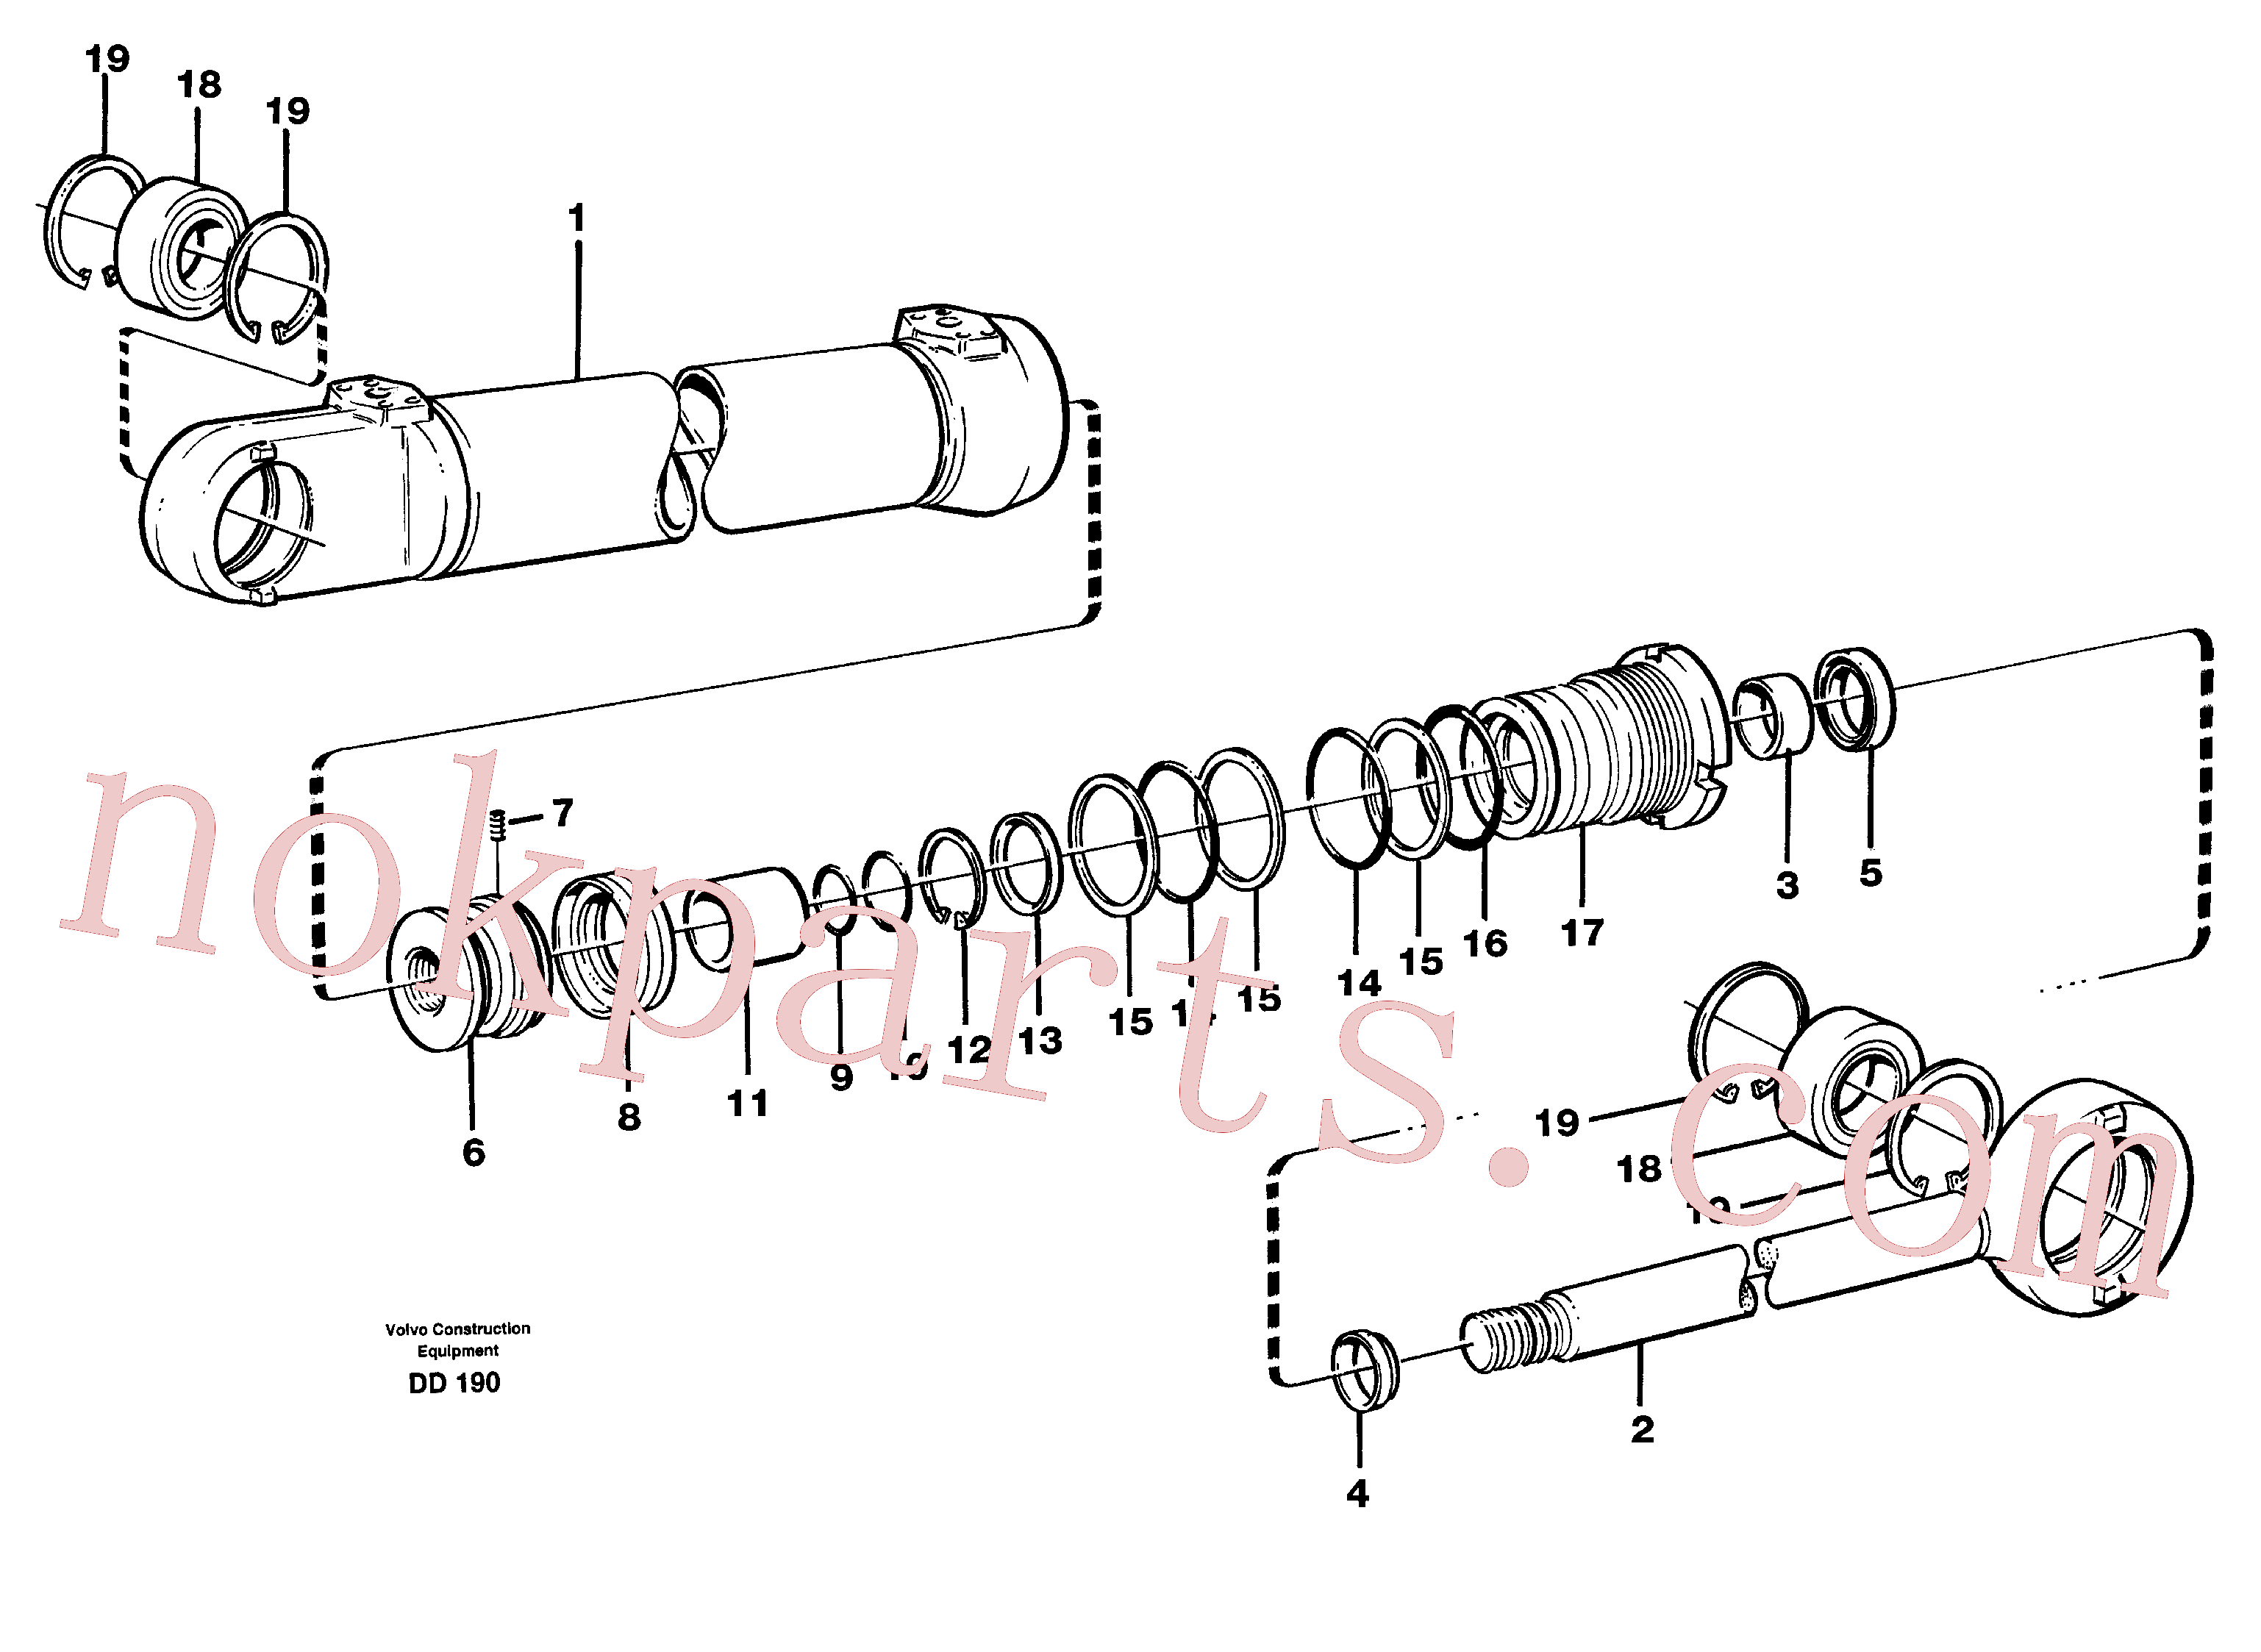 VOE11715960 for Volvo Hydraulic cylinder(DD190 assembly)